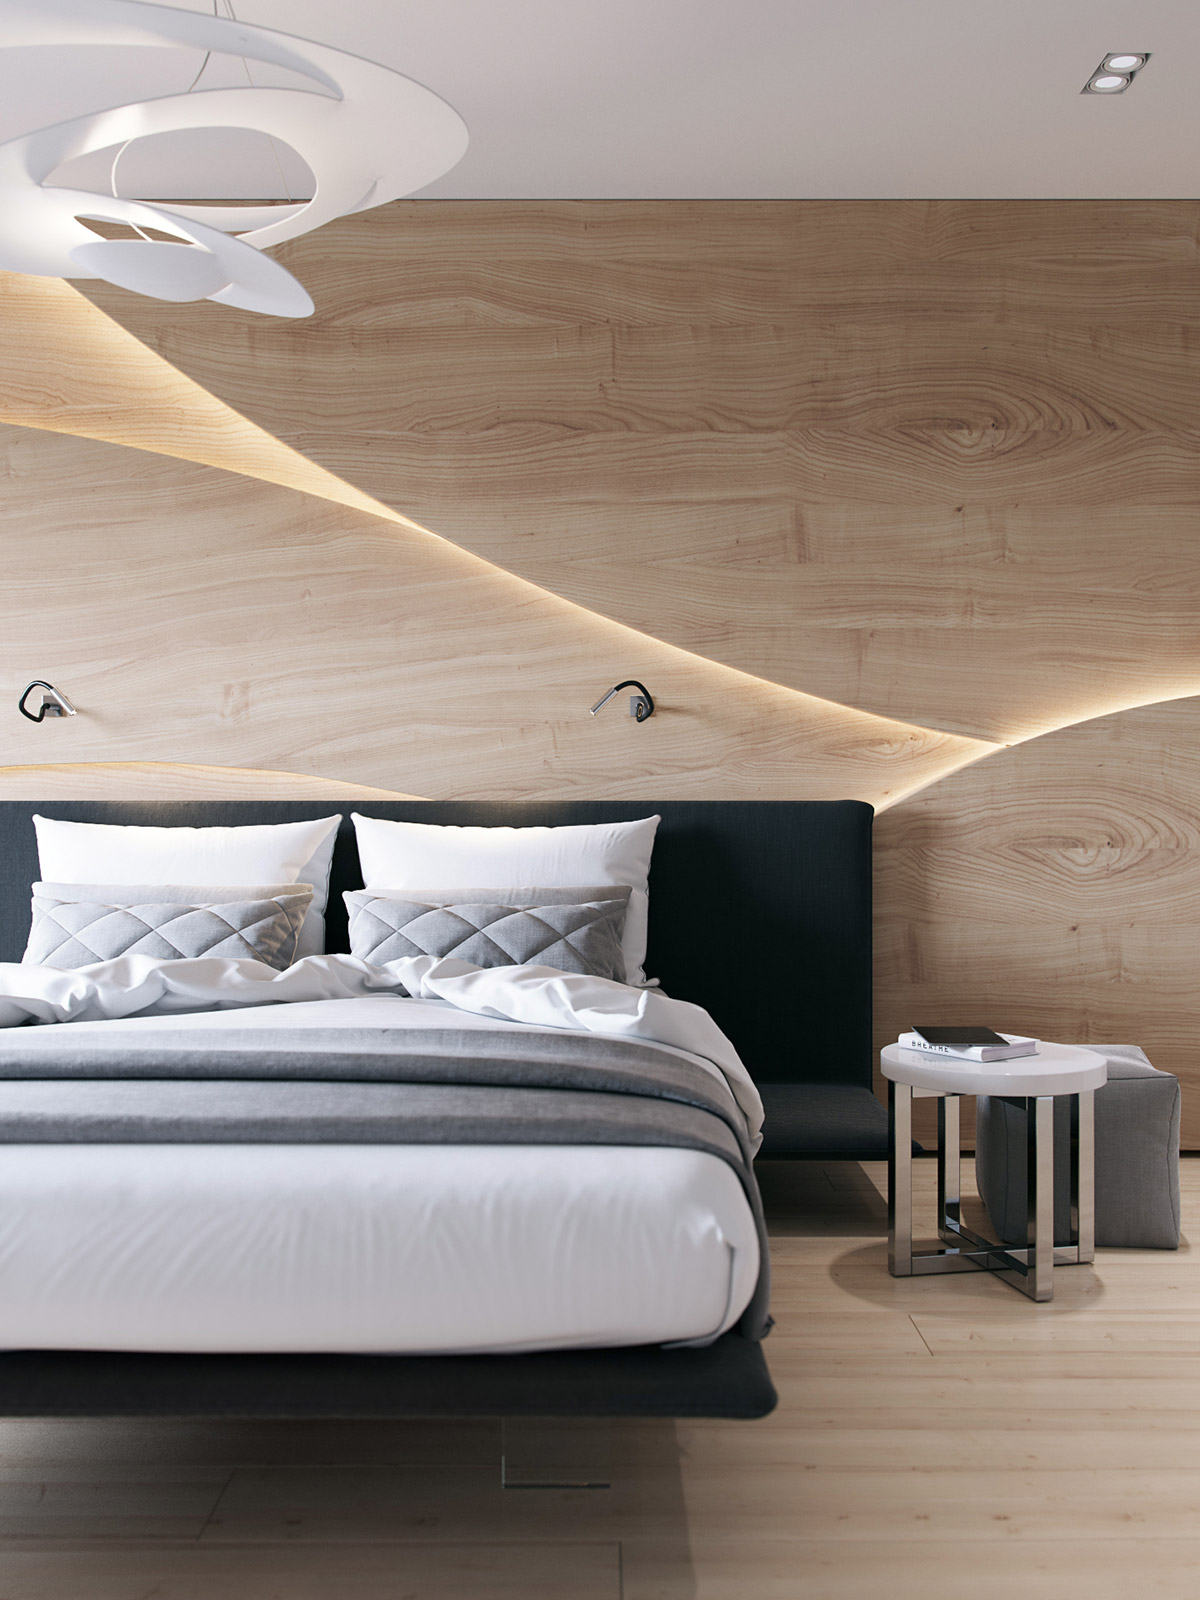 Wooden wall designs 30 striking bedrooms that use the for Wooden interior design for bedroom